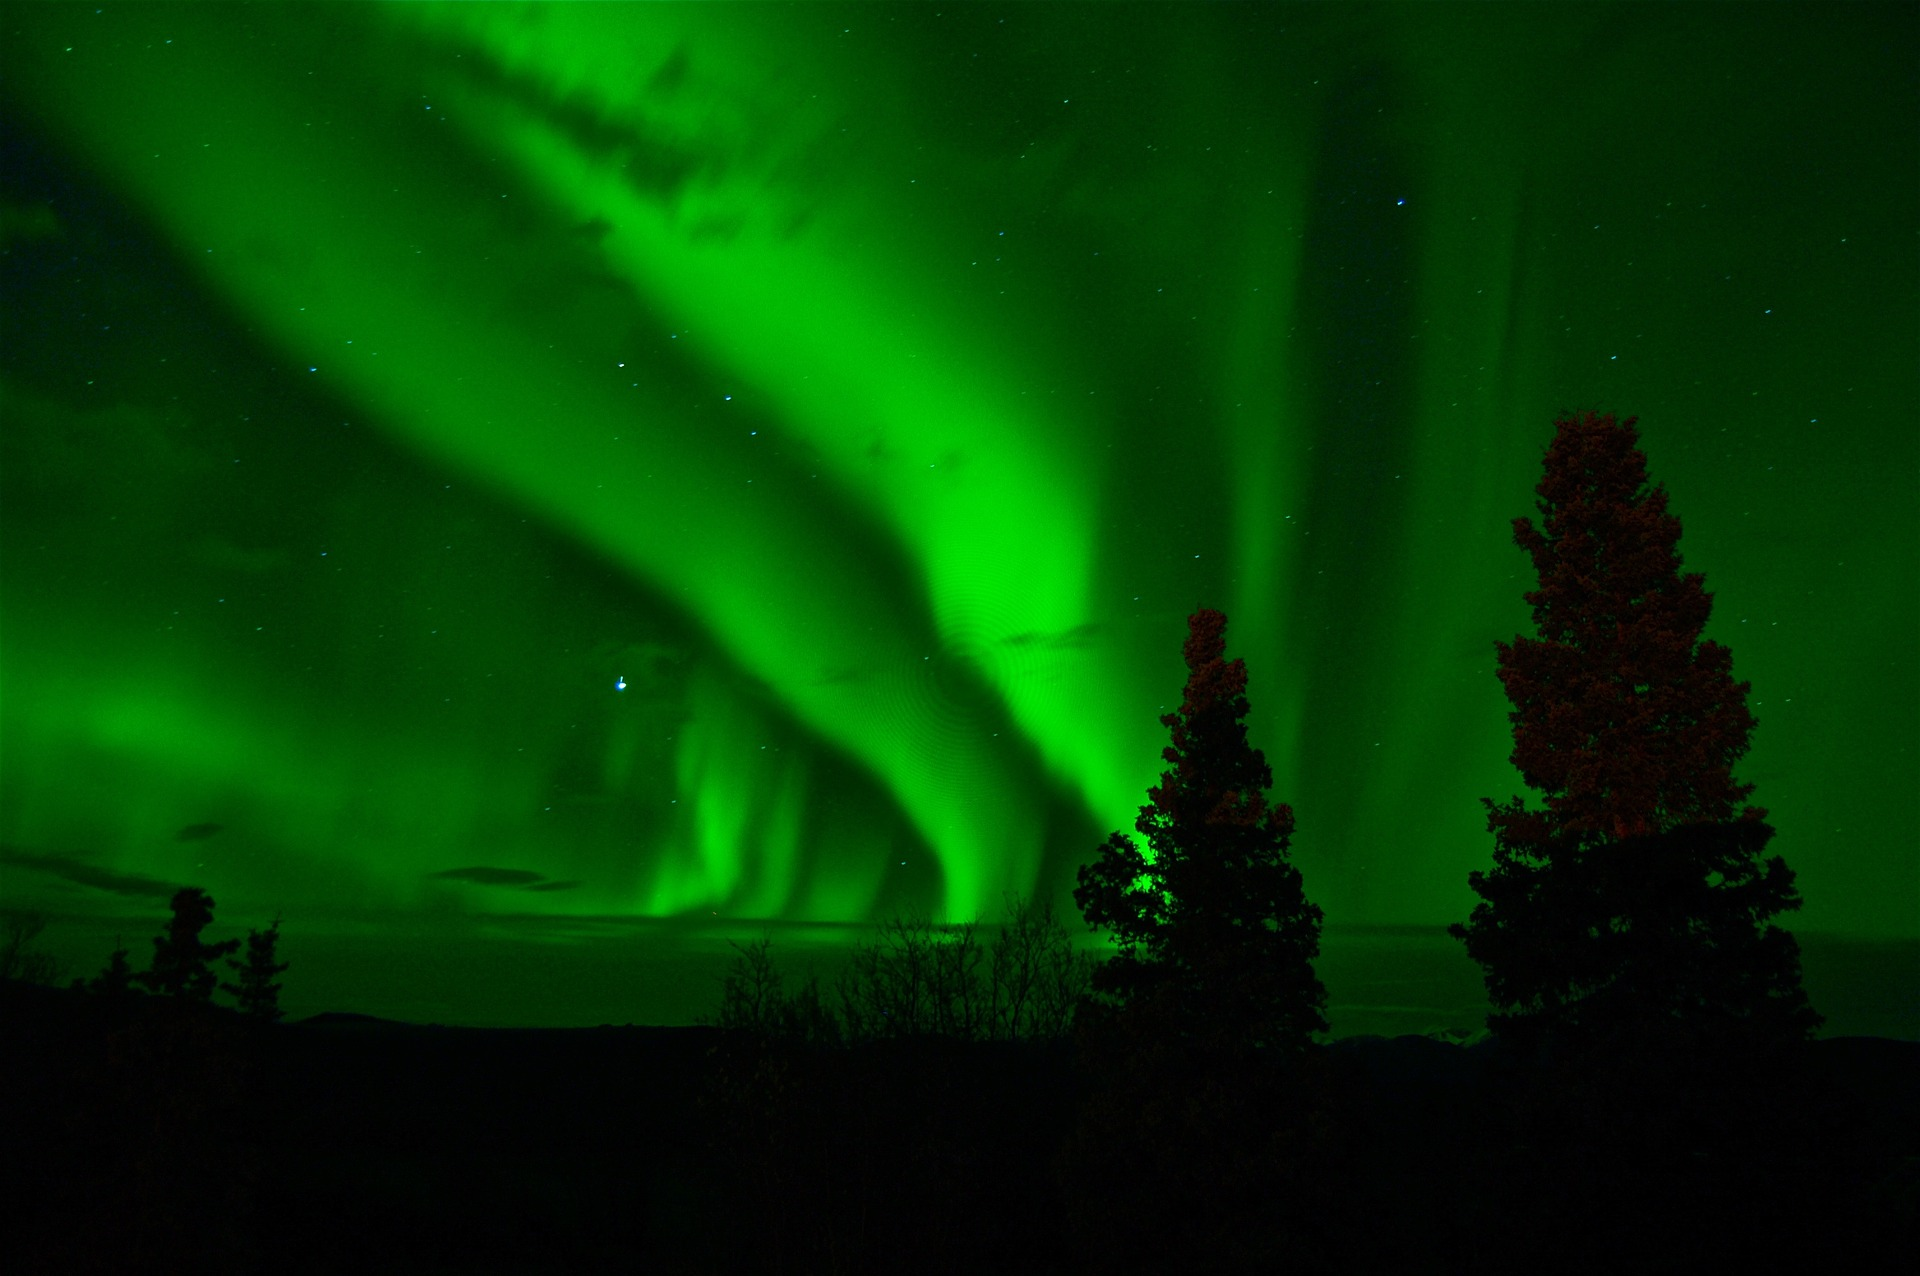 An image of Northern Lights